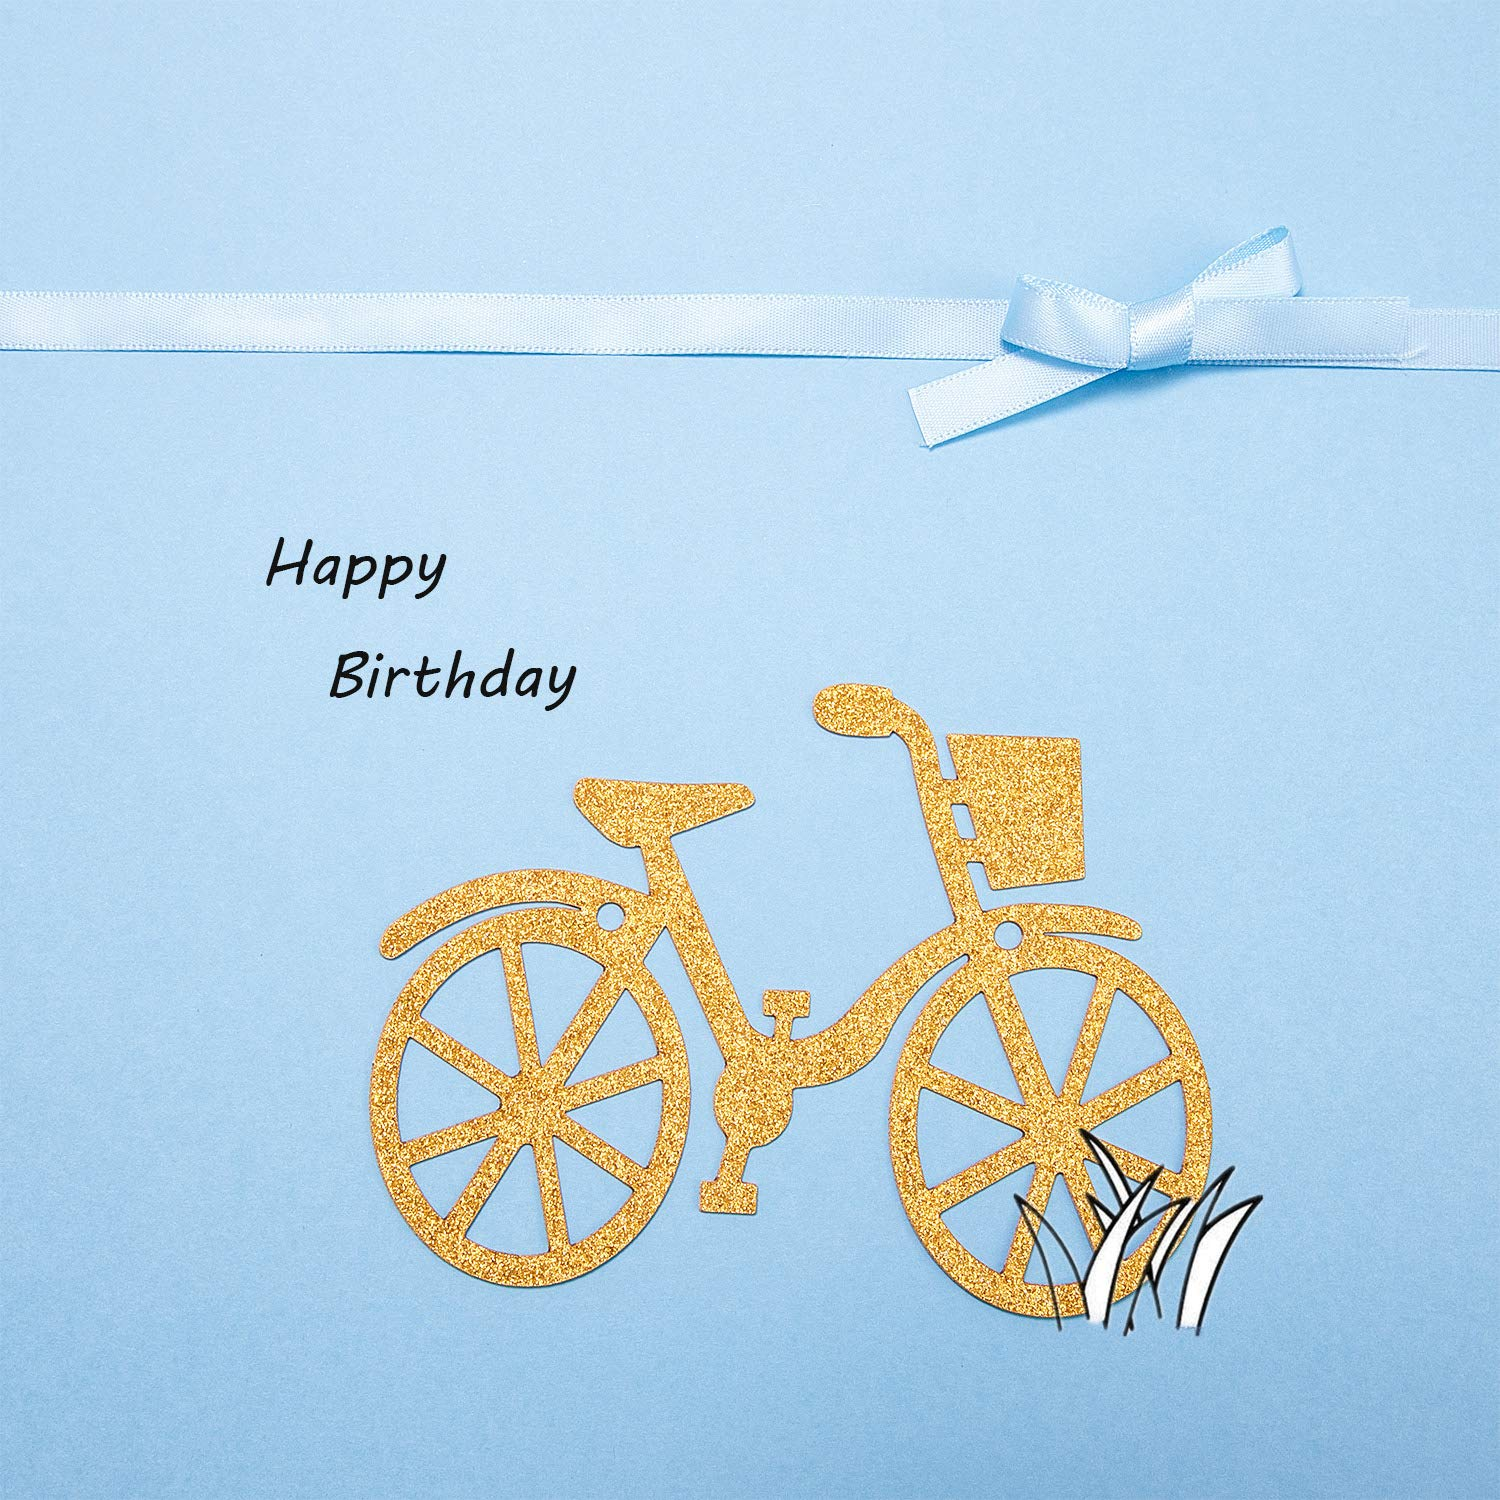 2 Pieces Bicycle Party Banner Bike Banner Sports Theme Bicycle Garland for Birthday Baby Shower Party Decoration